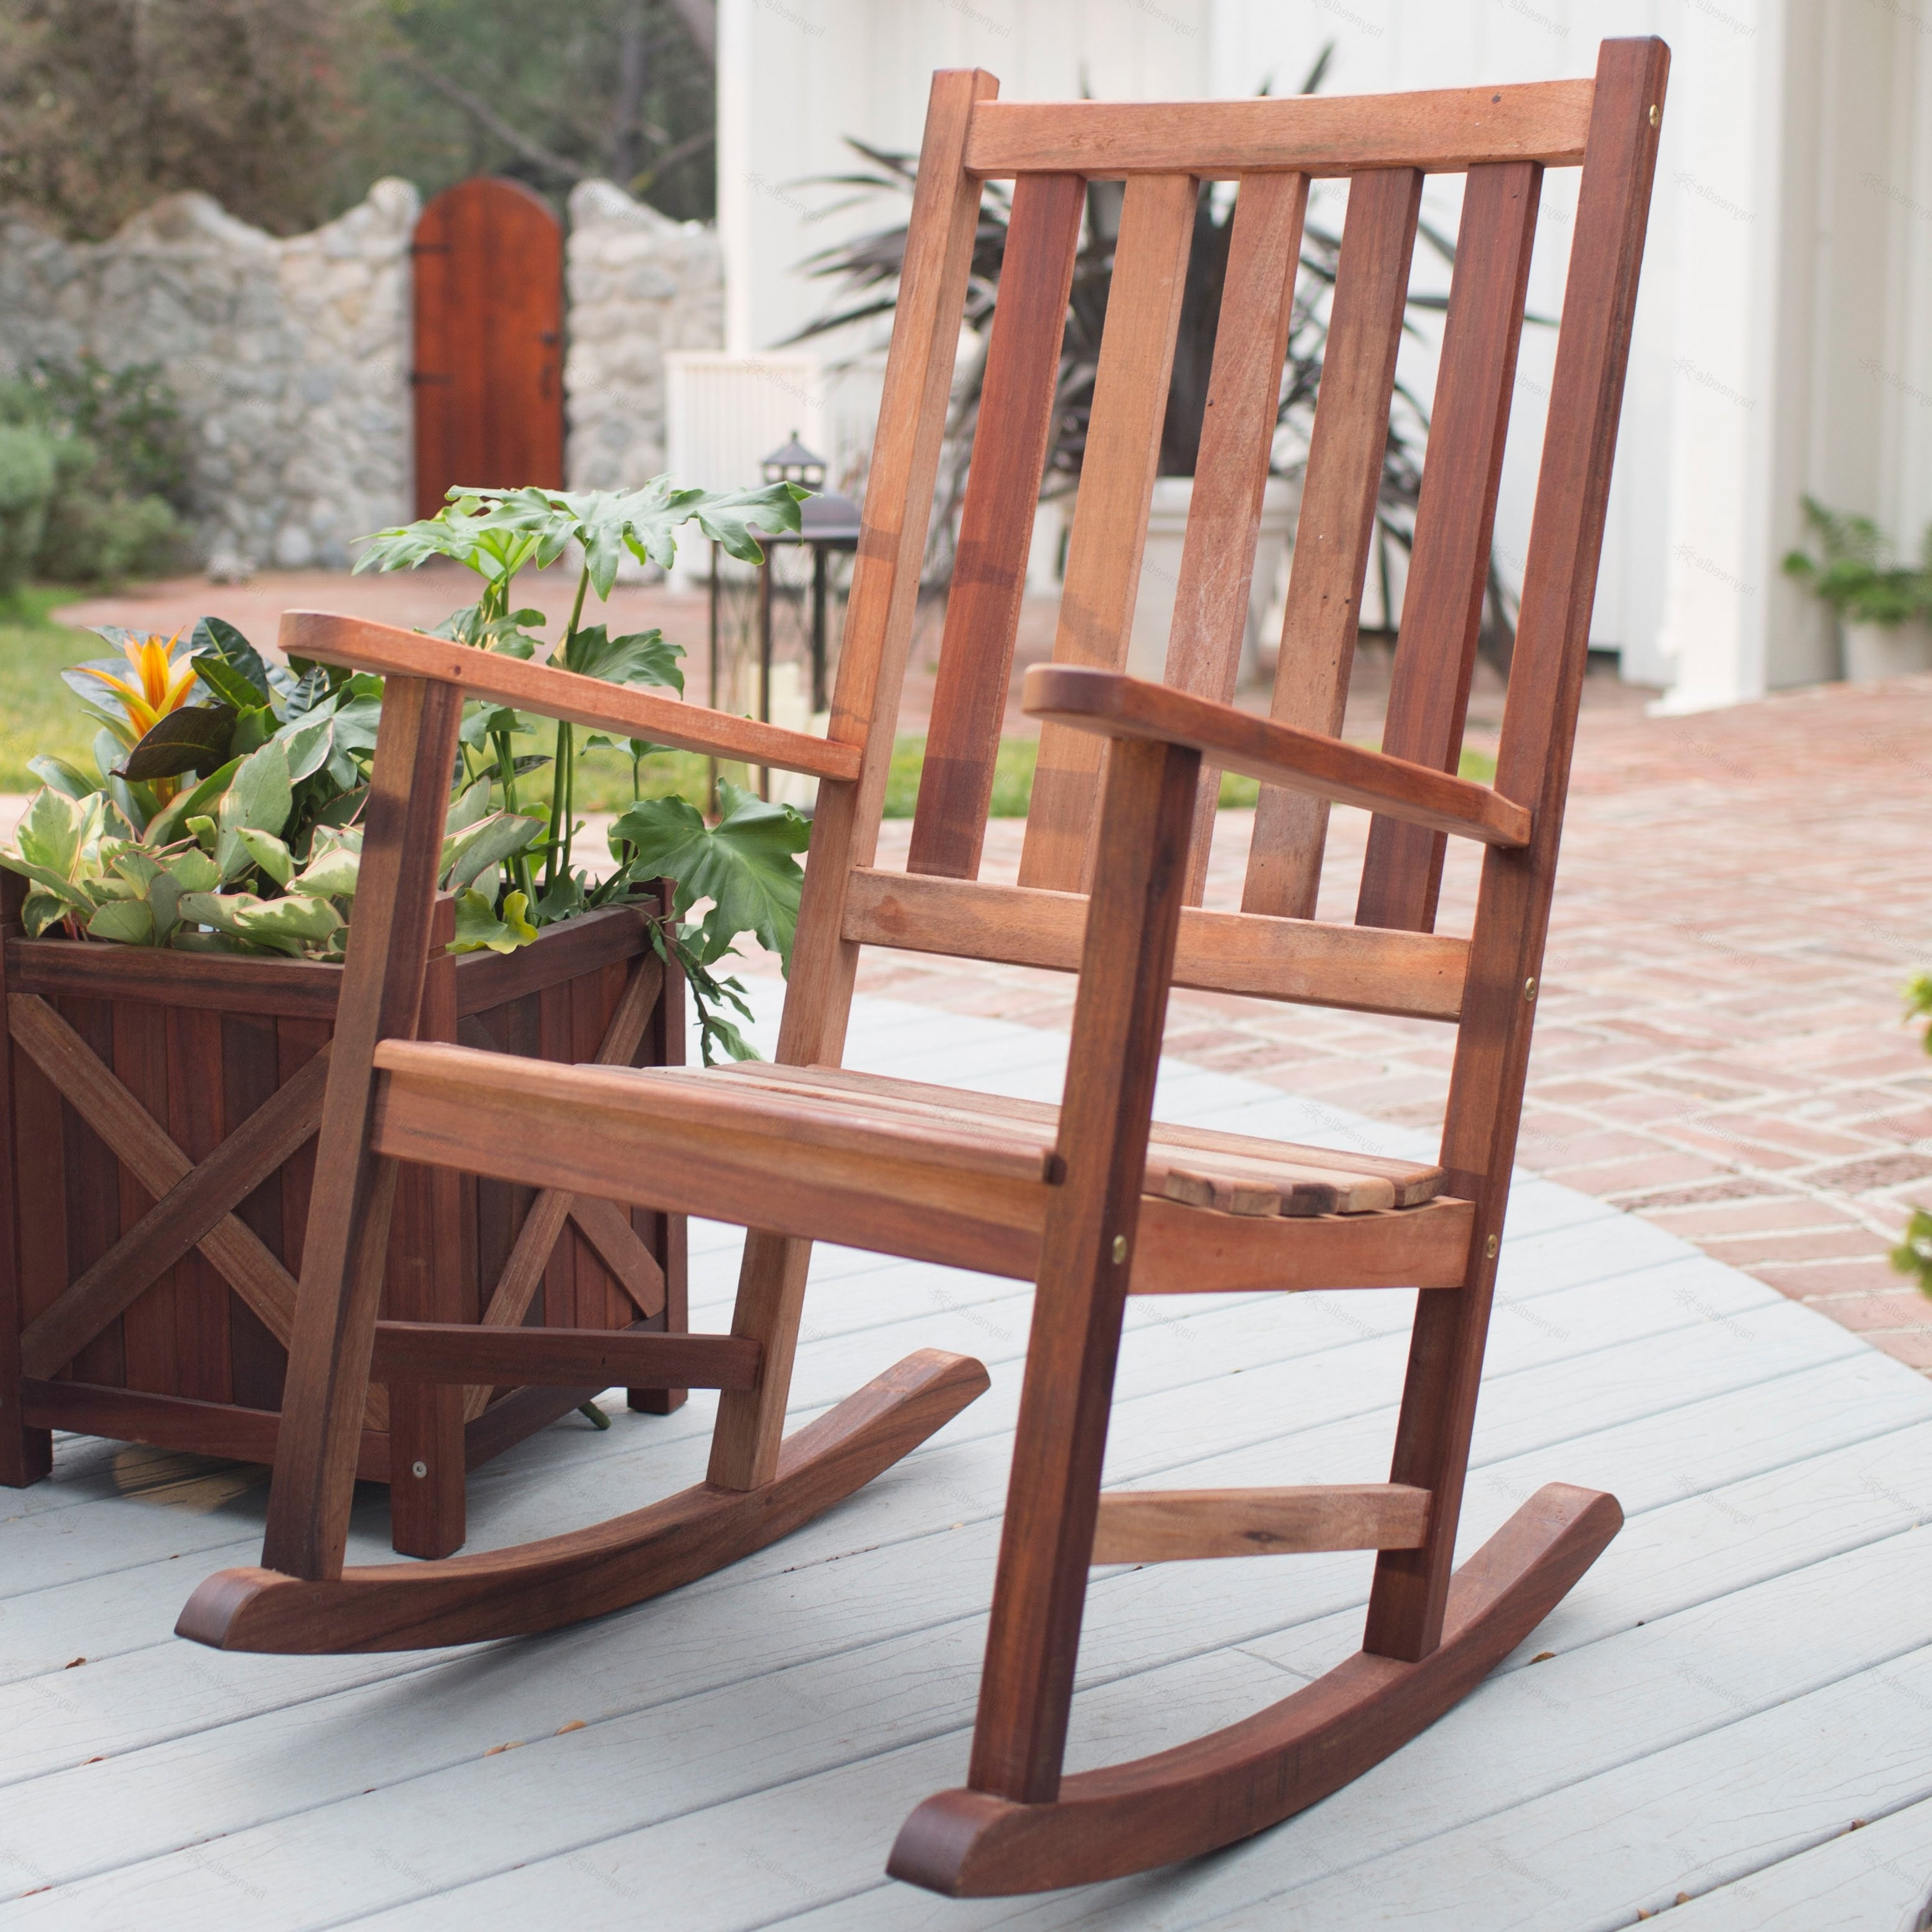 Current Enjoy A Comfortable Swing With Rocking Chair – Bellissimainteriors Within Rocking Chairs For Porch (View 4 of 20)